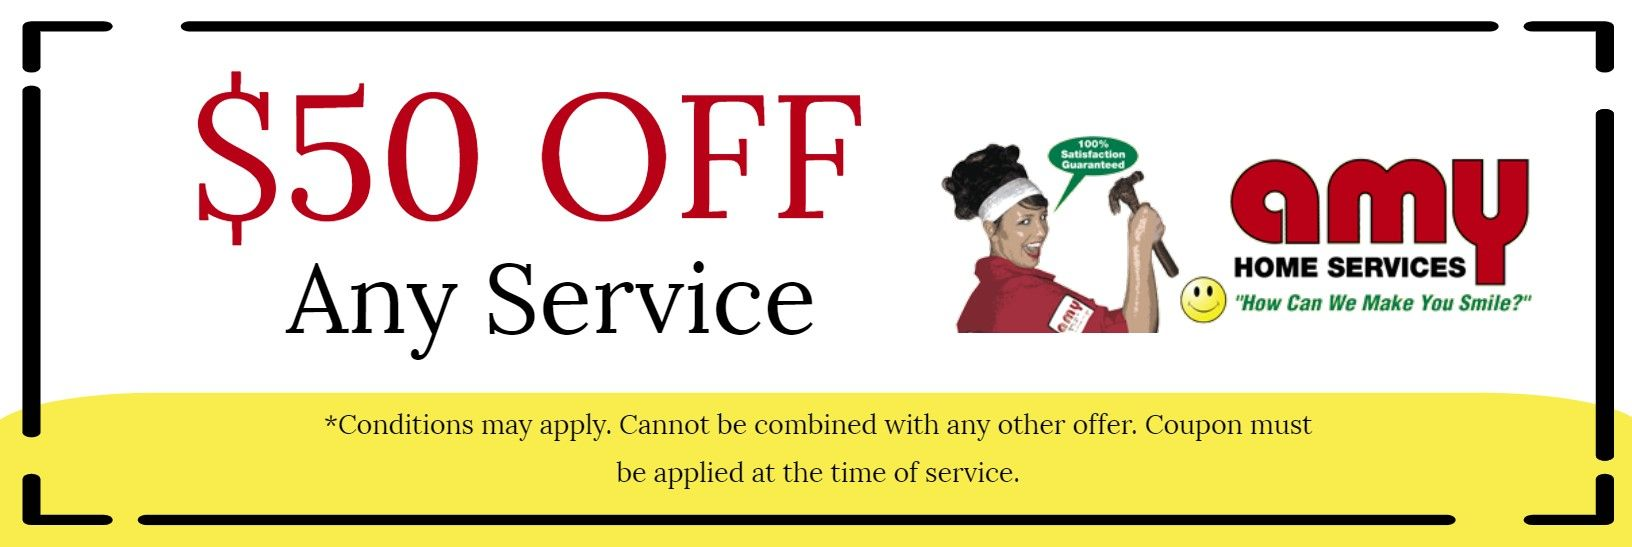 $50 Off Any Service